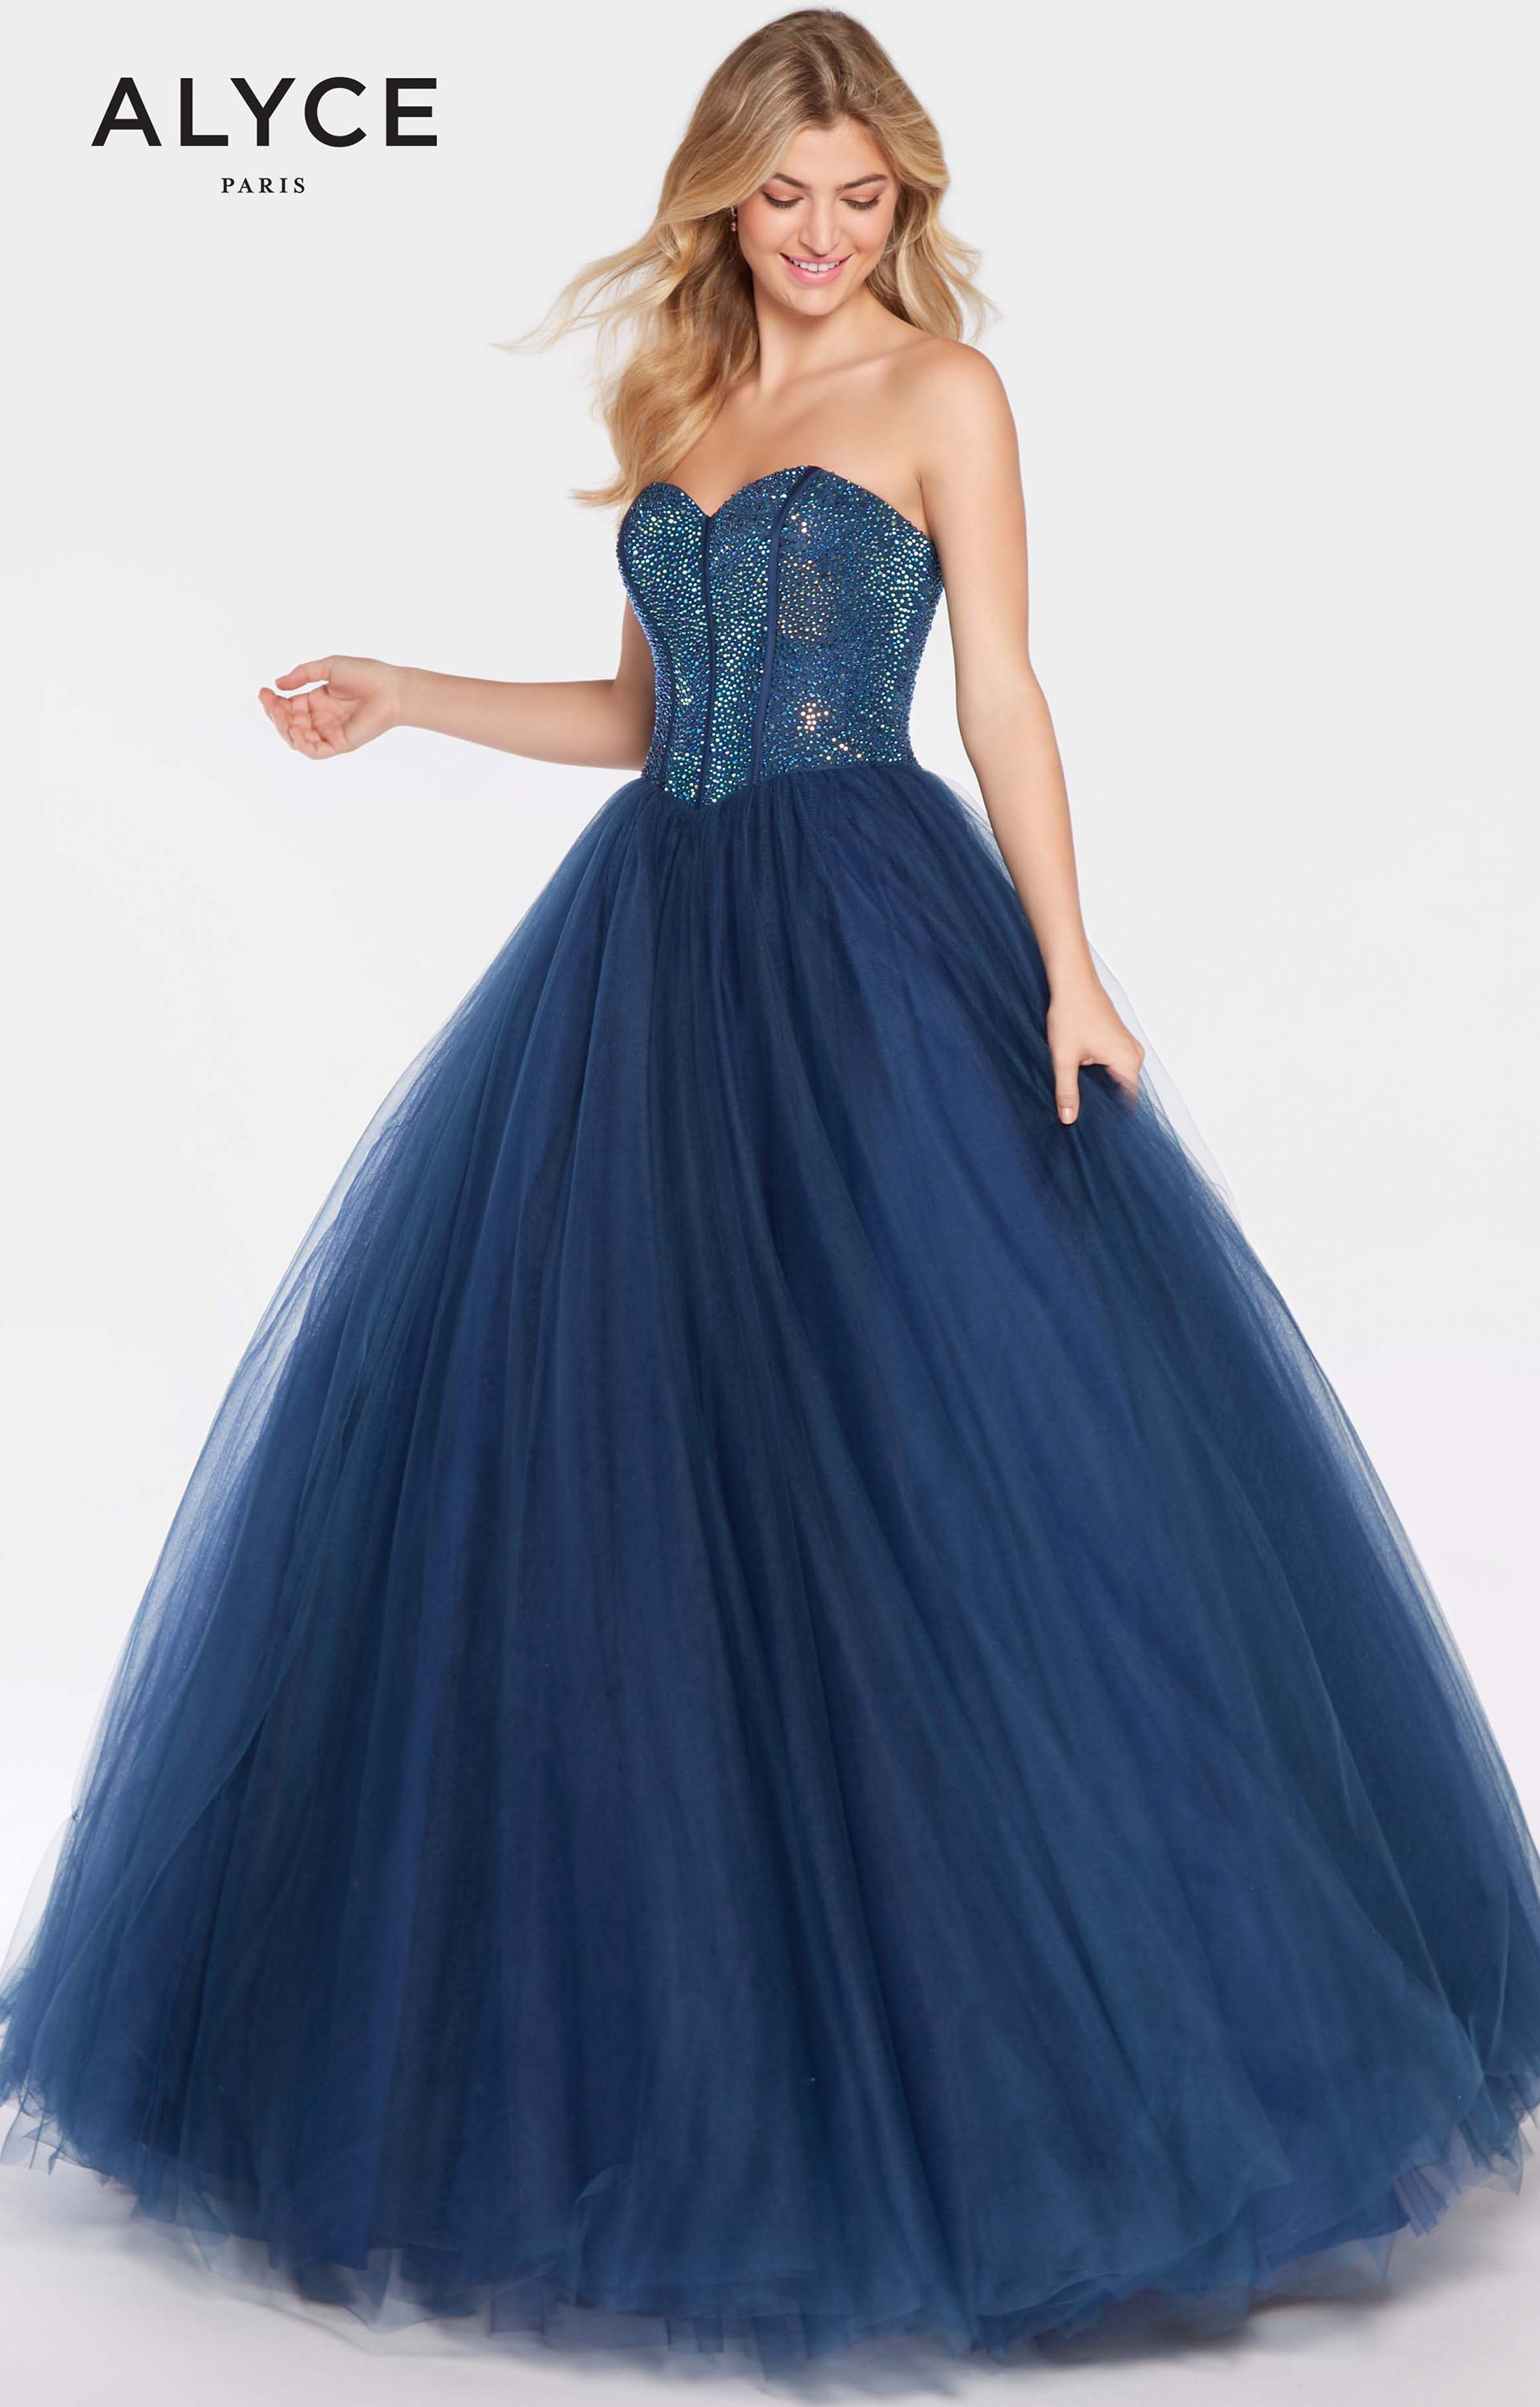 Alyce Paris 60204 - Strapless Sweetheart Tulle Ball Gown Prom Dress